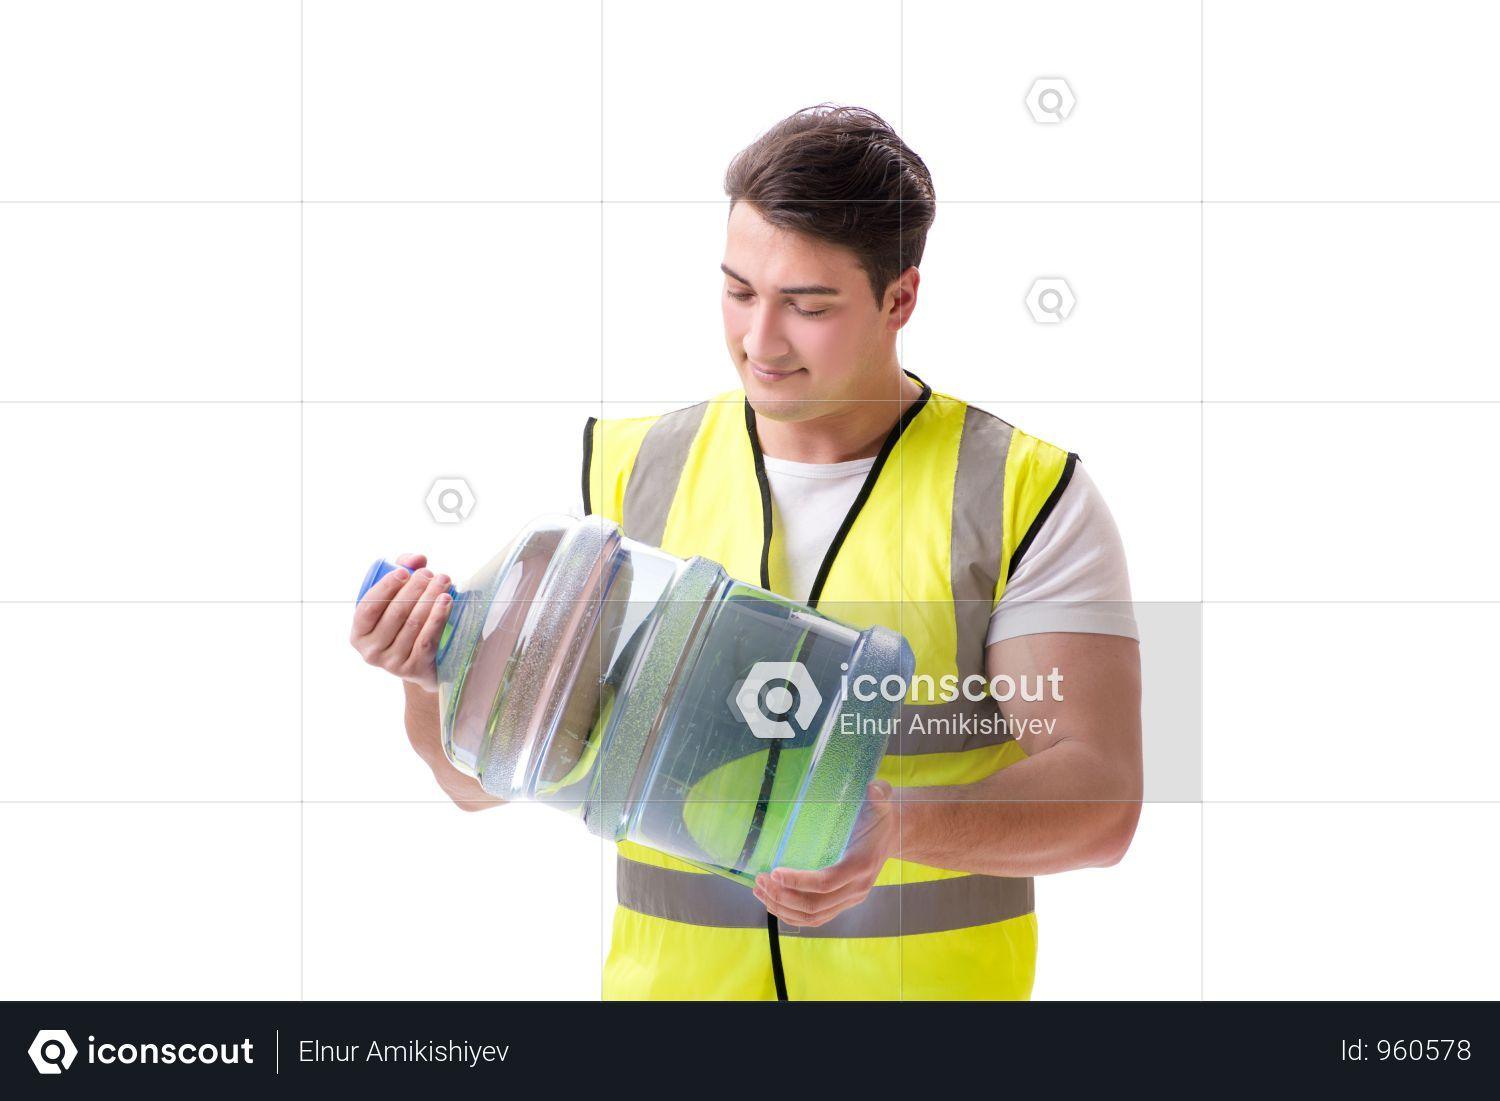 Premium Man Delivering Water Bottle Isolated On White Photo Download In Png Jpg Format Water Bottle Bottle Delivery Photos